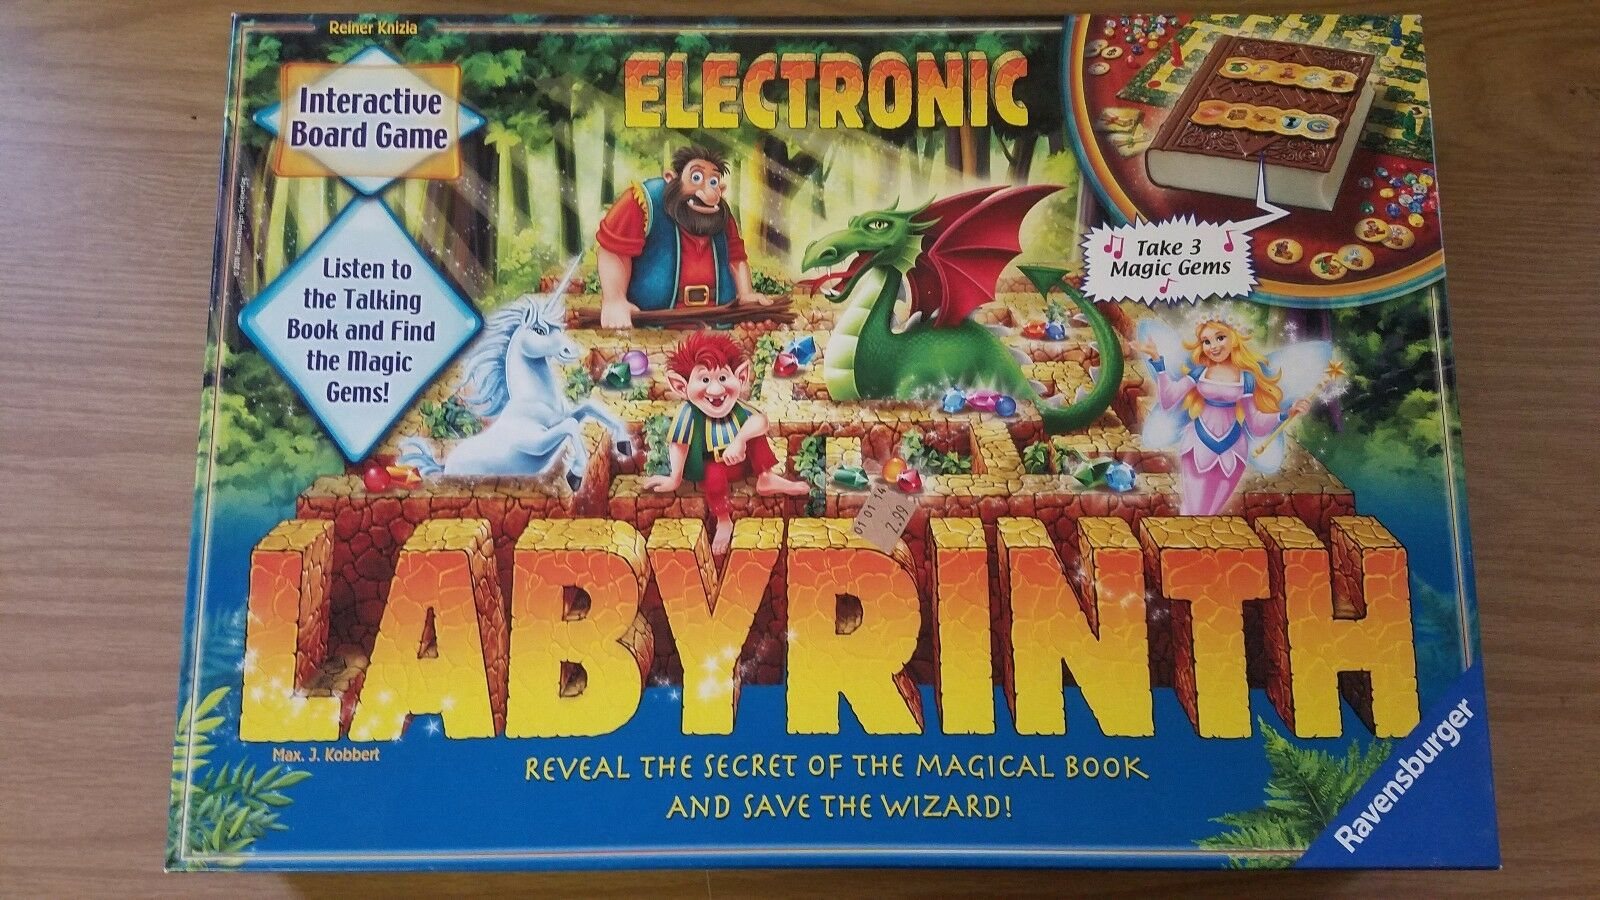 2011 Electronic Labyrinth Max J Kobbert Board Game by Ravensburger COMPLETE